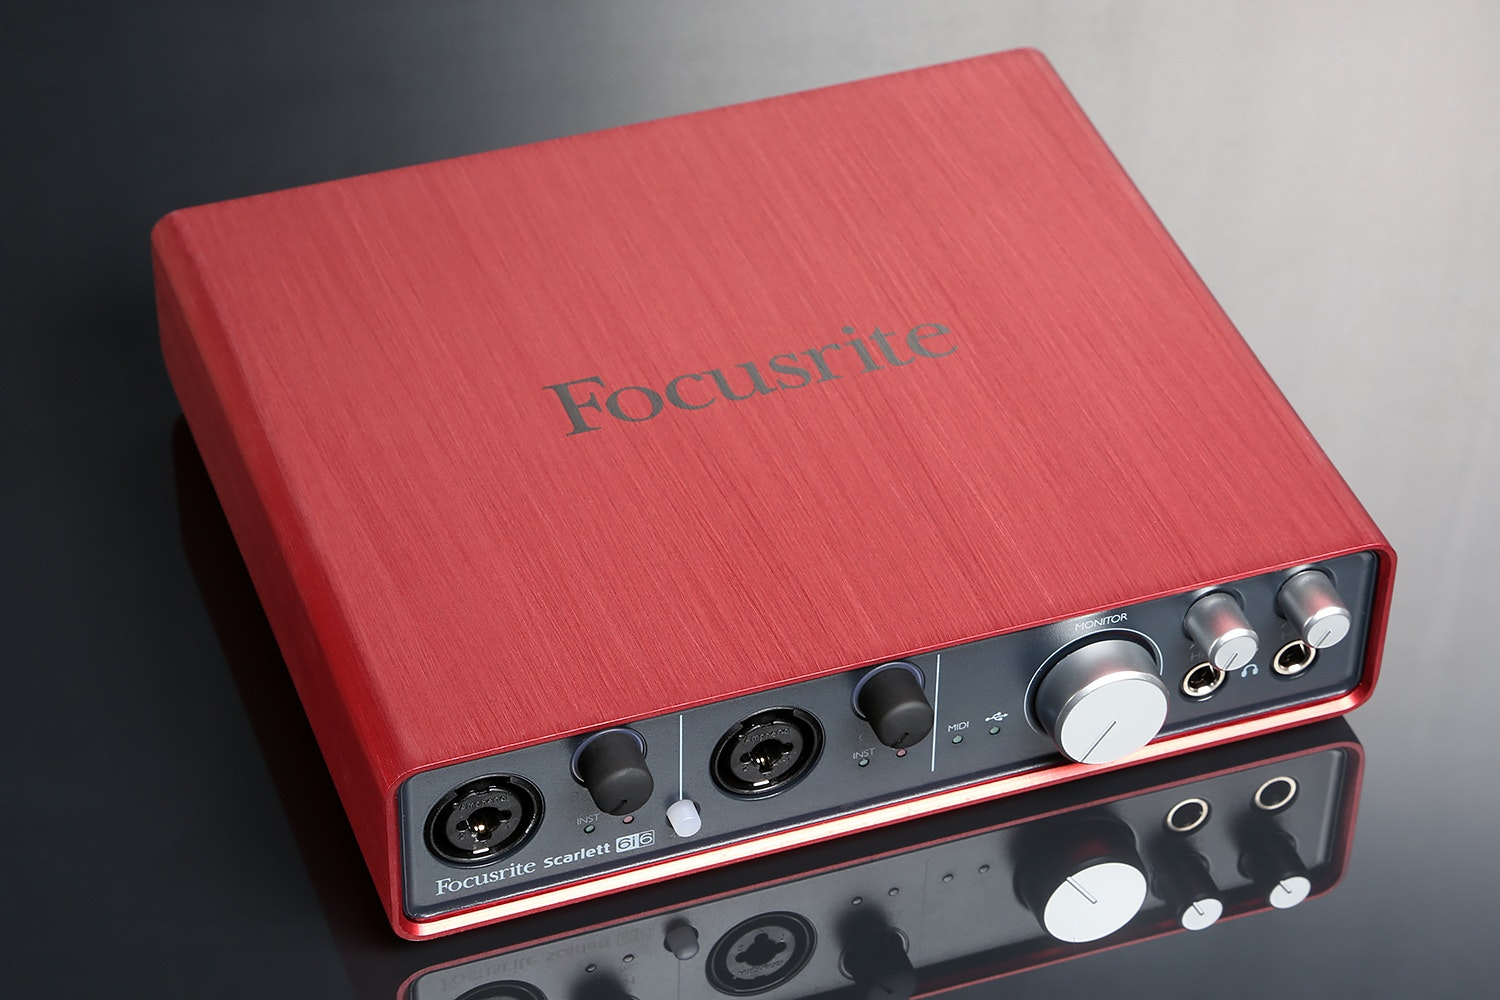 Focusrite 6i6 USB Audio Interface